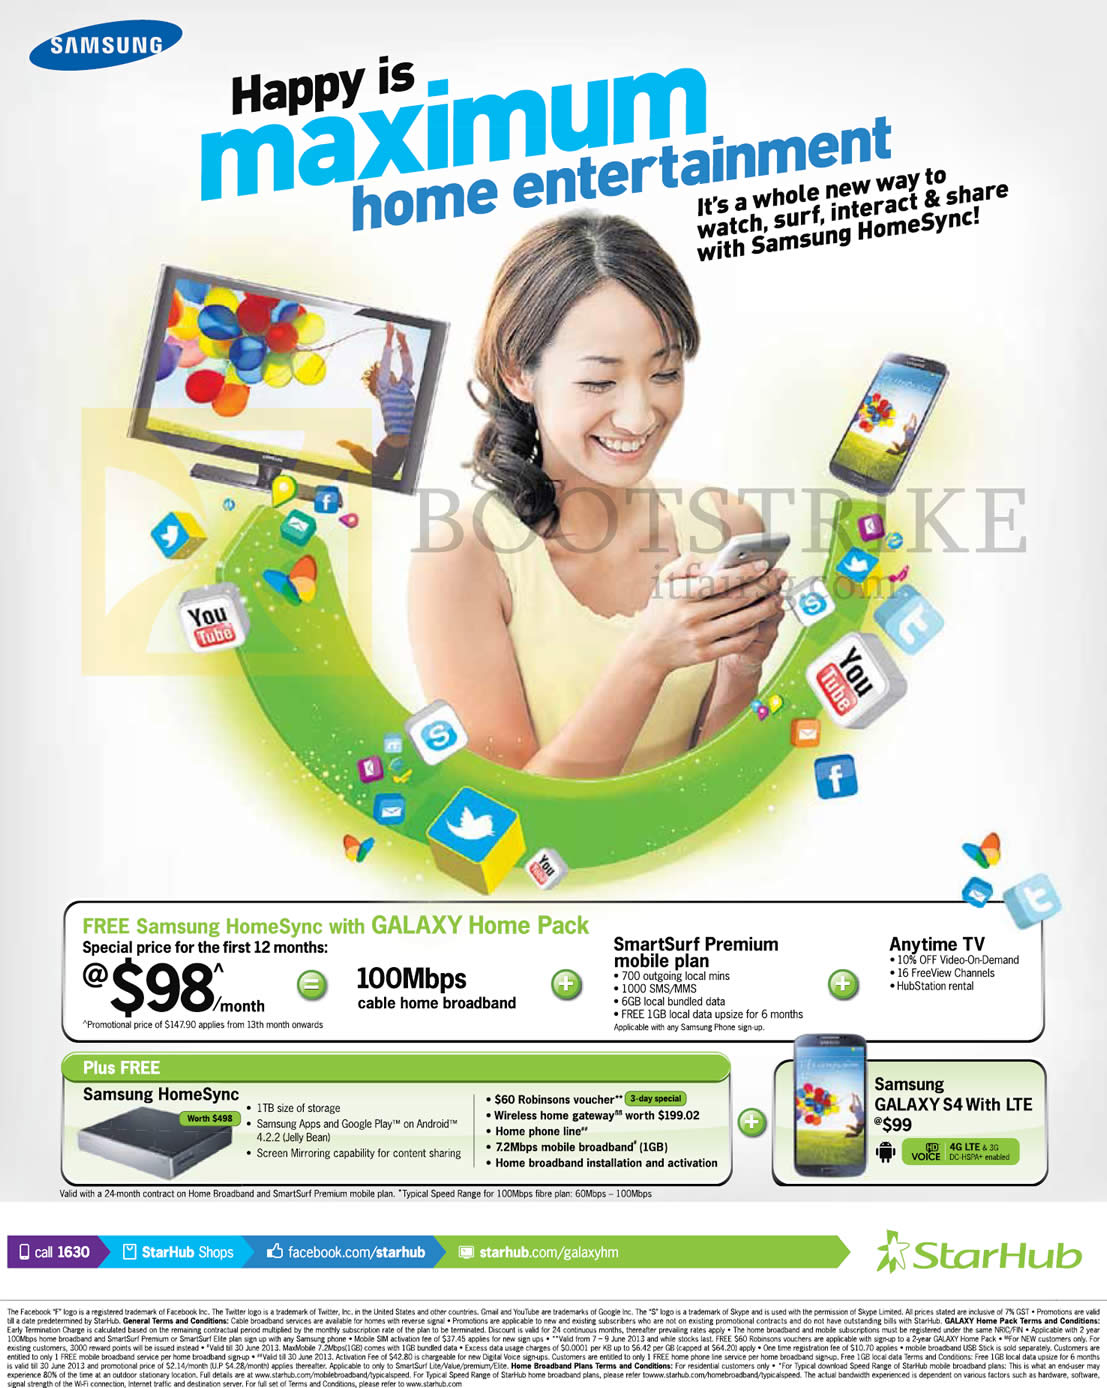 PC SHOW 2013 price list image brochure of Starhub Broadband Cable 100Mbps 98.00 Free Samsung HomeSync With Galaxy Home Pack, Galaxy S4, Fixed Line, Gateway, Mobile Broadband